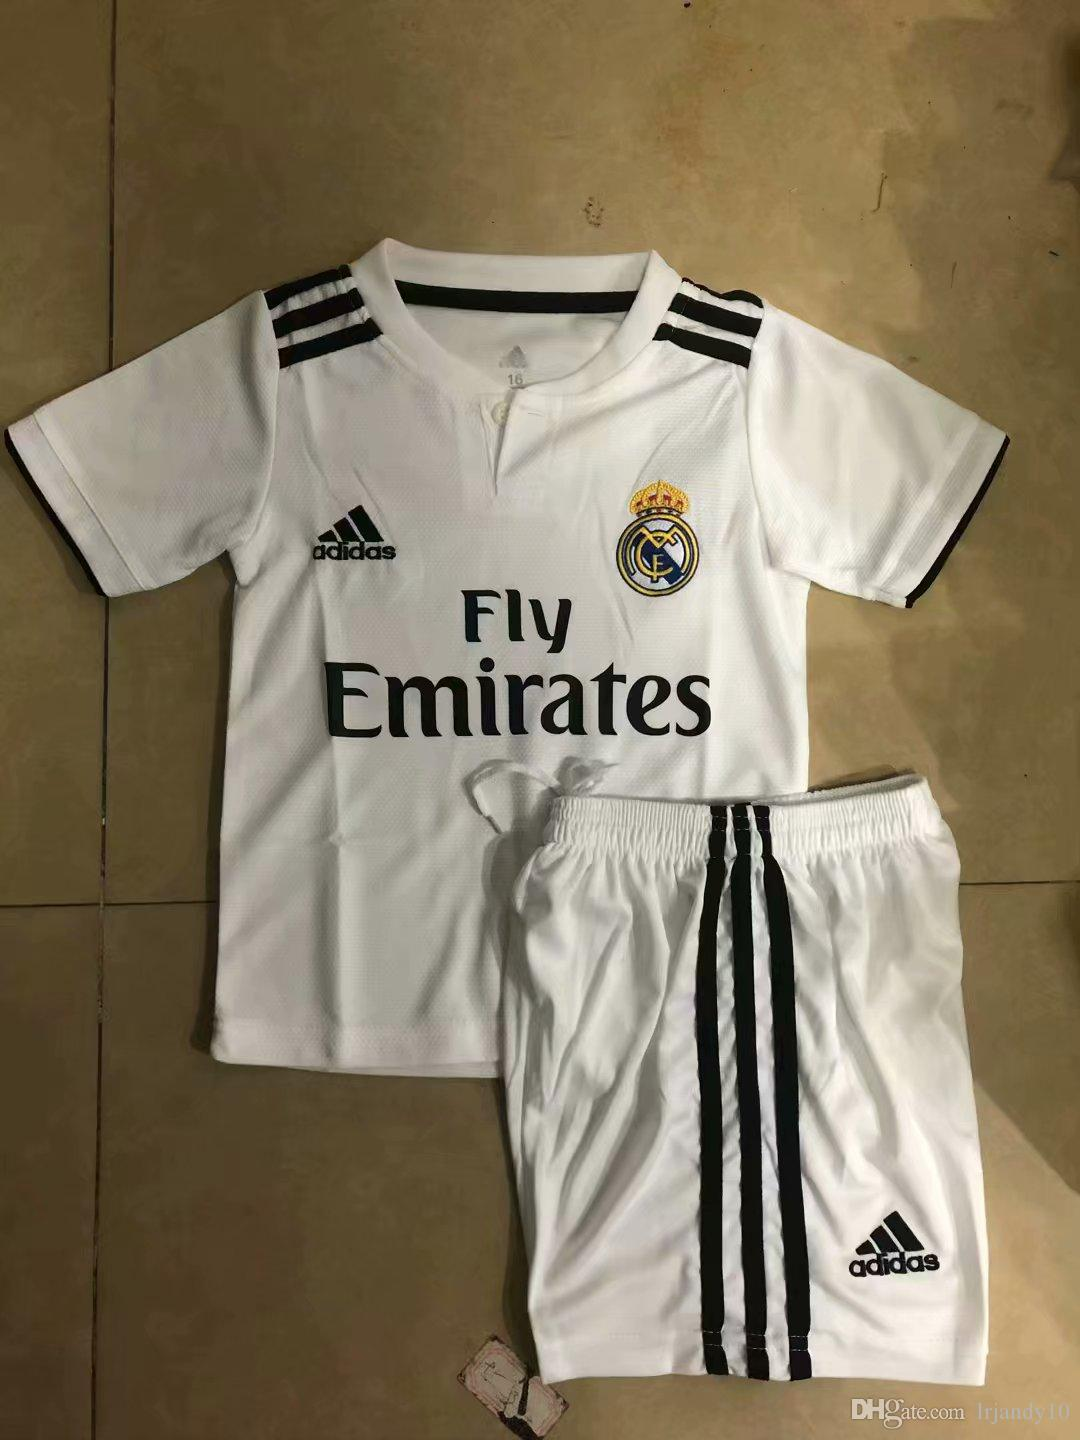 8f057a14b 2019 Real Madrid Jersey 2018 2019 MODRIC Marcelo Kids Football Shirt BALE  ASENSIO Third Kit Soccer Jersey With Sock From Lrjandy10